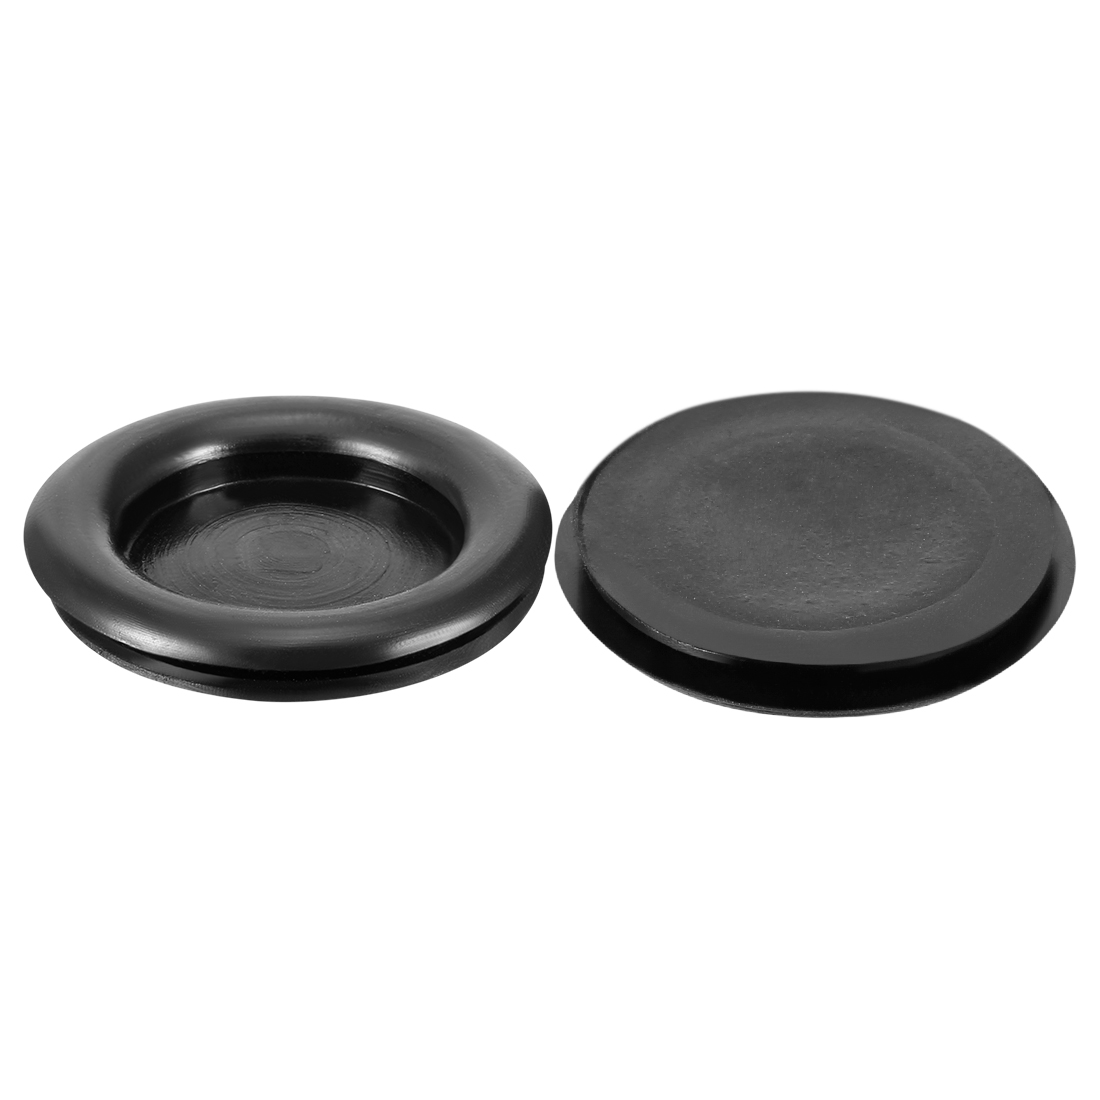 Wire Protector Oil Resistant Rubber Grommets 30mm Mounting Dia 20 Pcs Black